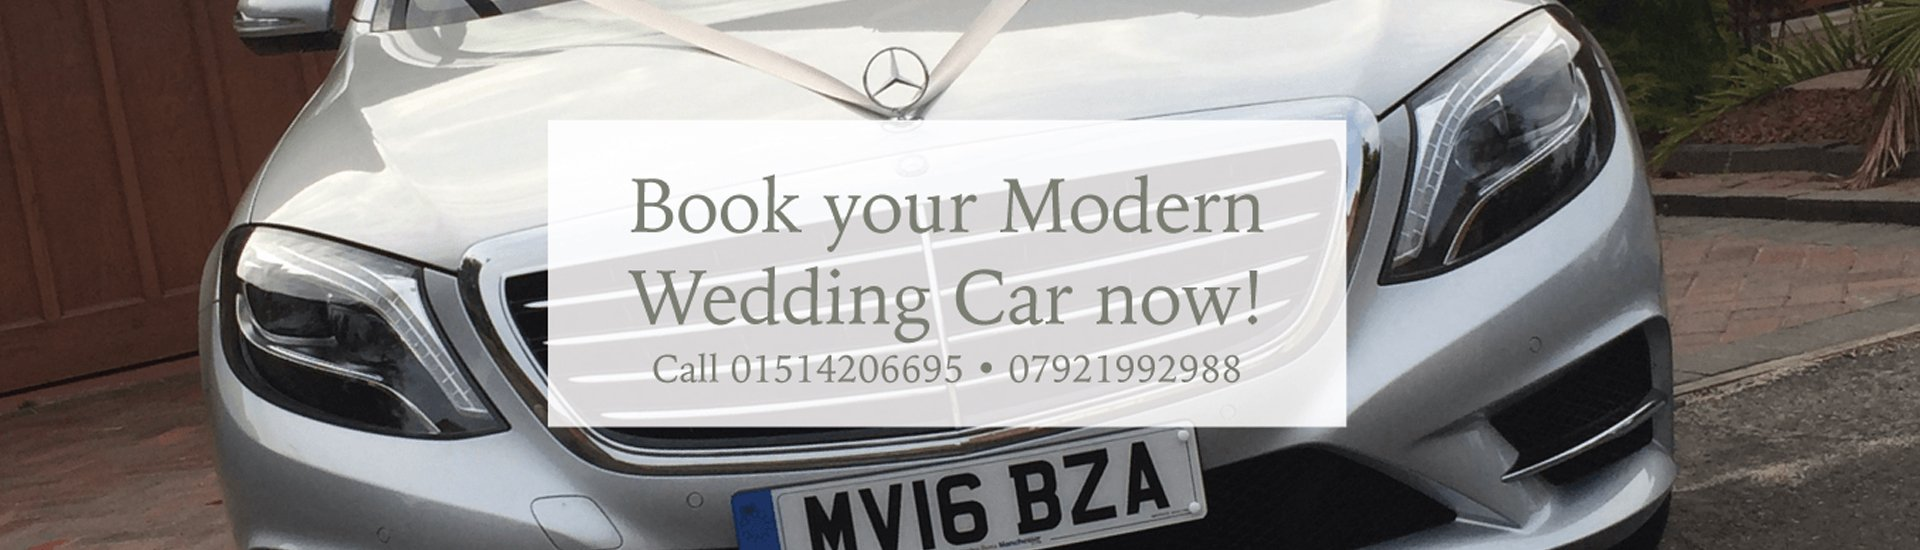 Stylish wedding cars